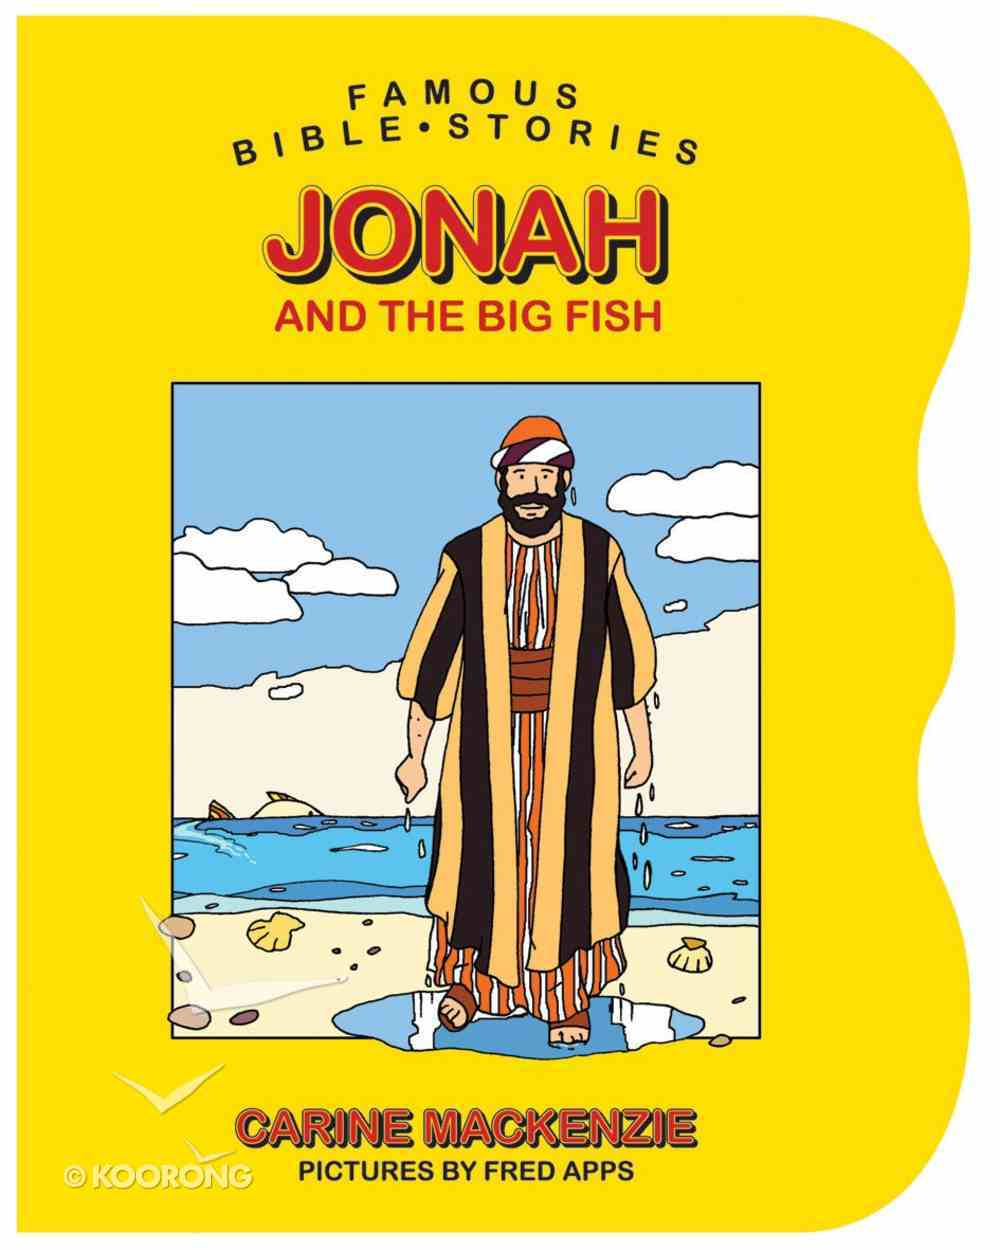 Jonah and the Big Fish (Famous Bible Stories Series) Board Book